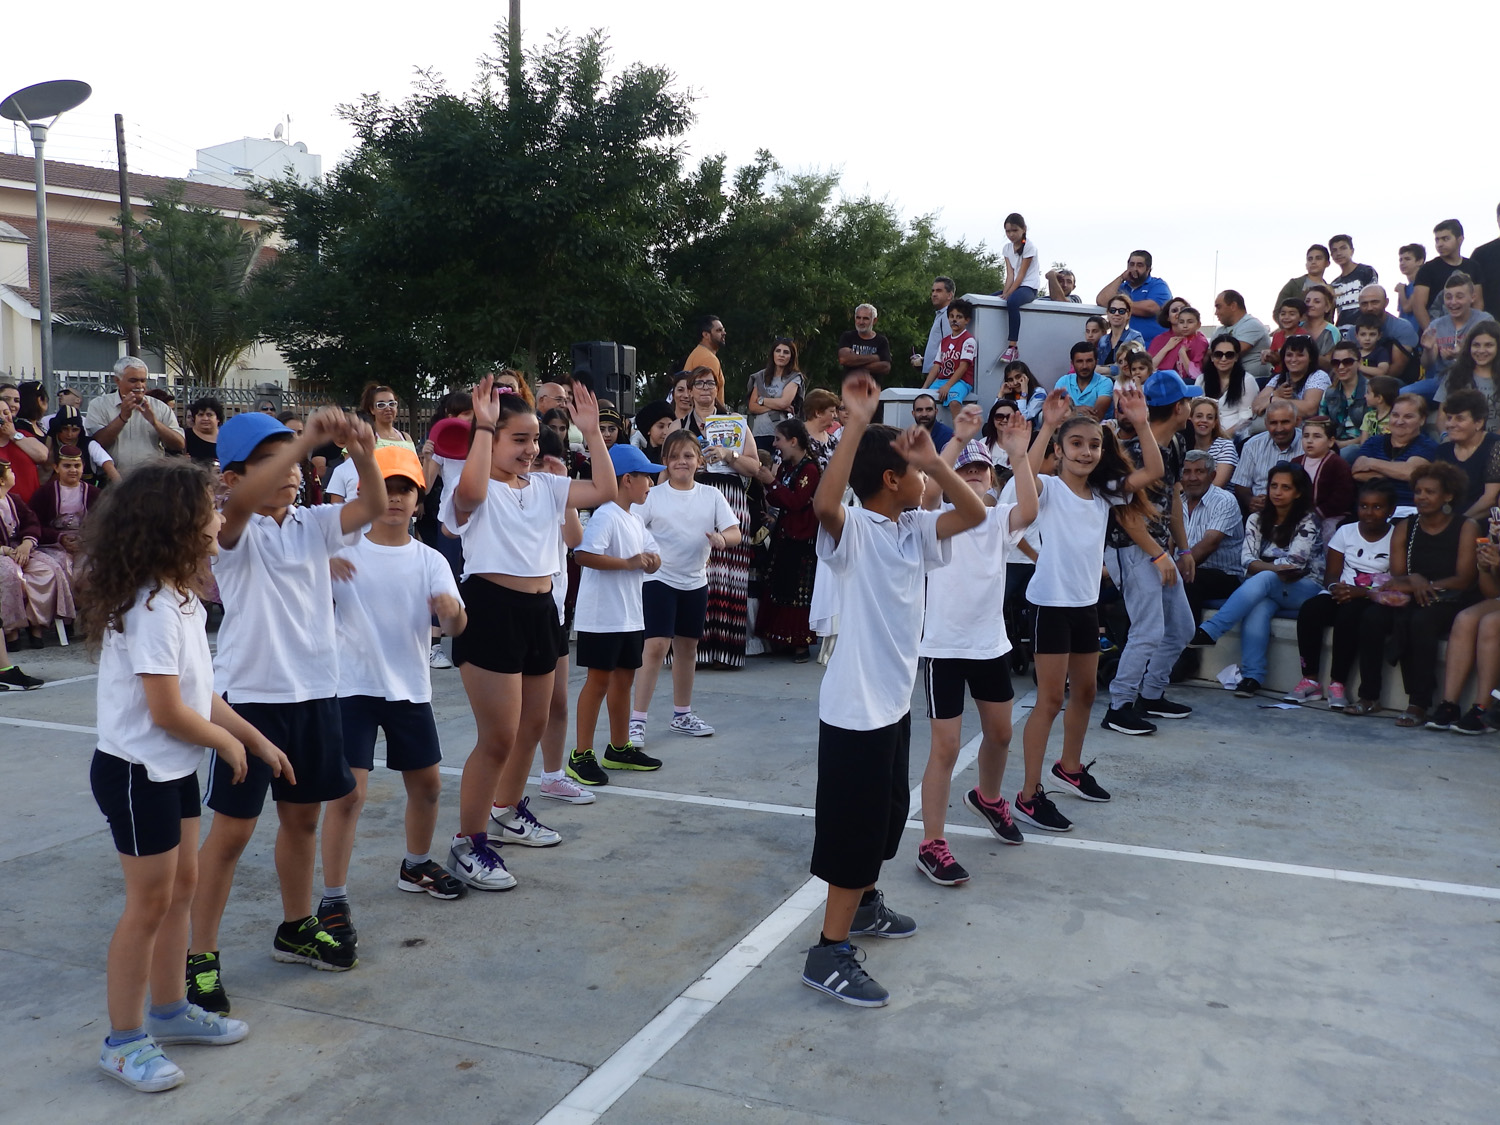 multicultural_Childrens_Festival_Ayios_Dhometios28516_16